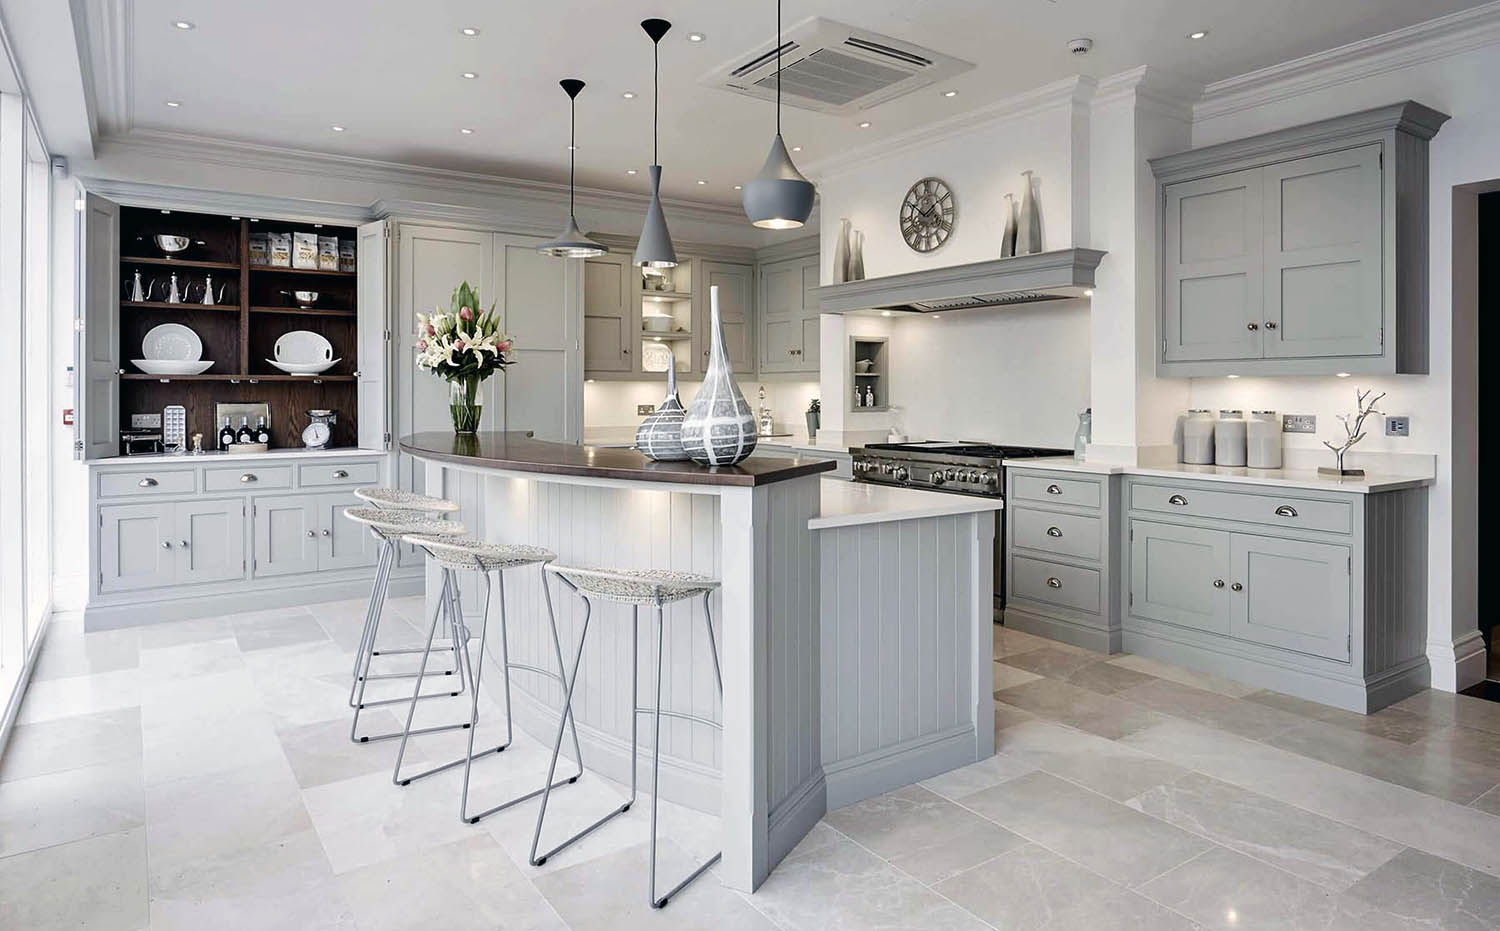 Gray cream kitchen cabinets. Some of the nicest shades of cream are made with a gray base and slight creamy undertone.